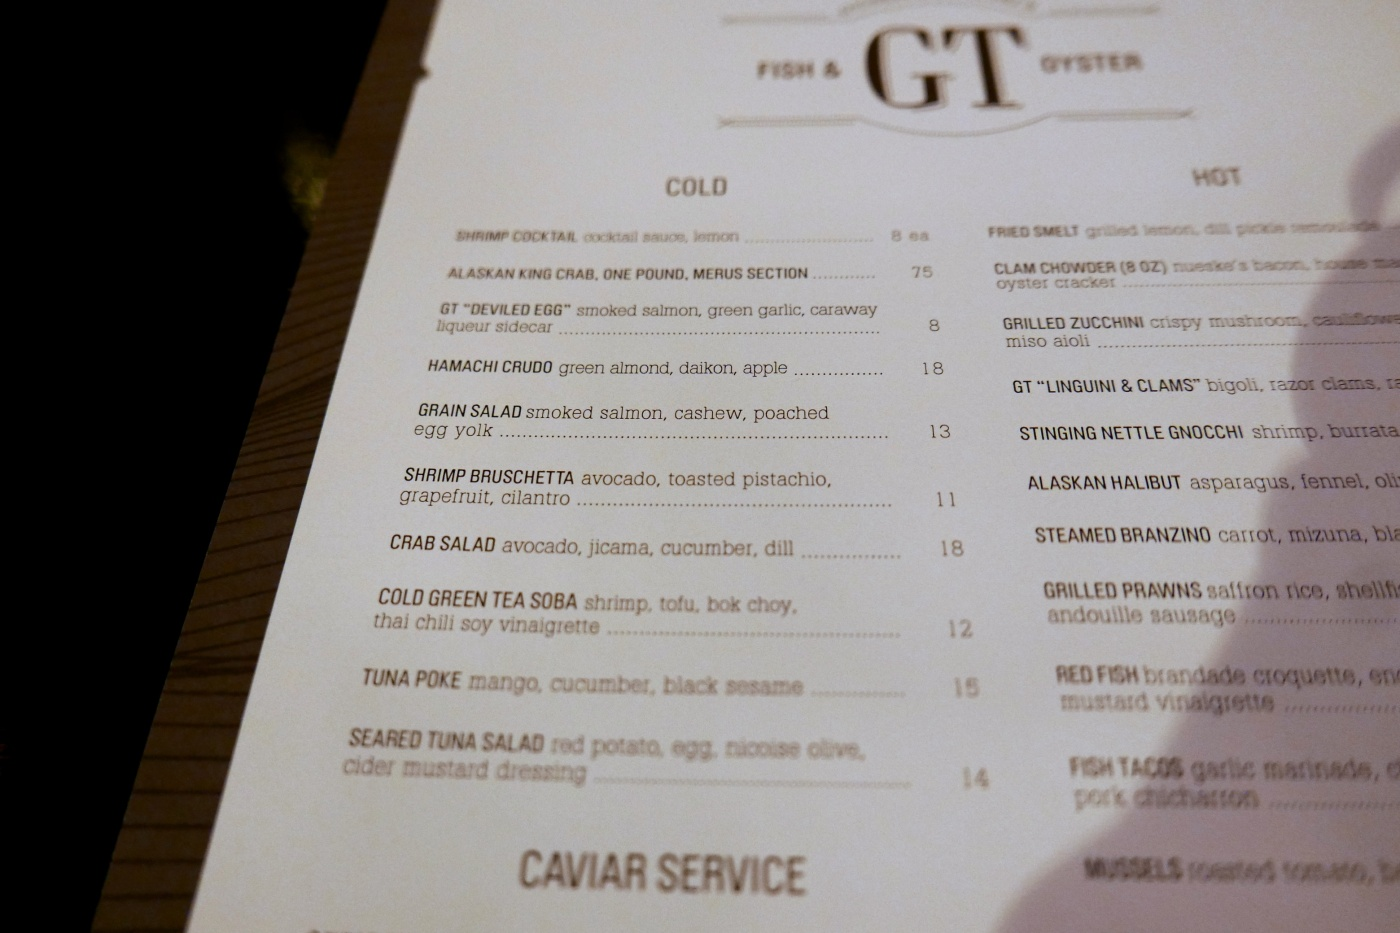 GT Fish & Oyster, 531 N Wells St, Chicago, IL